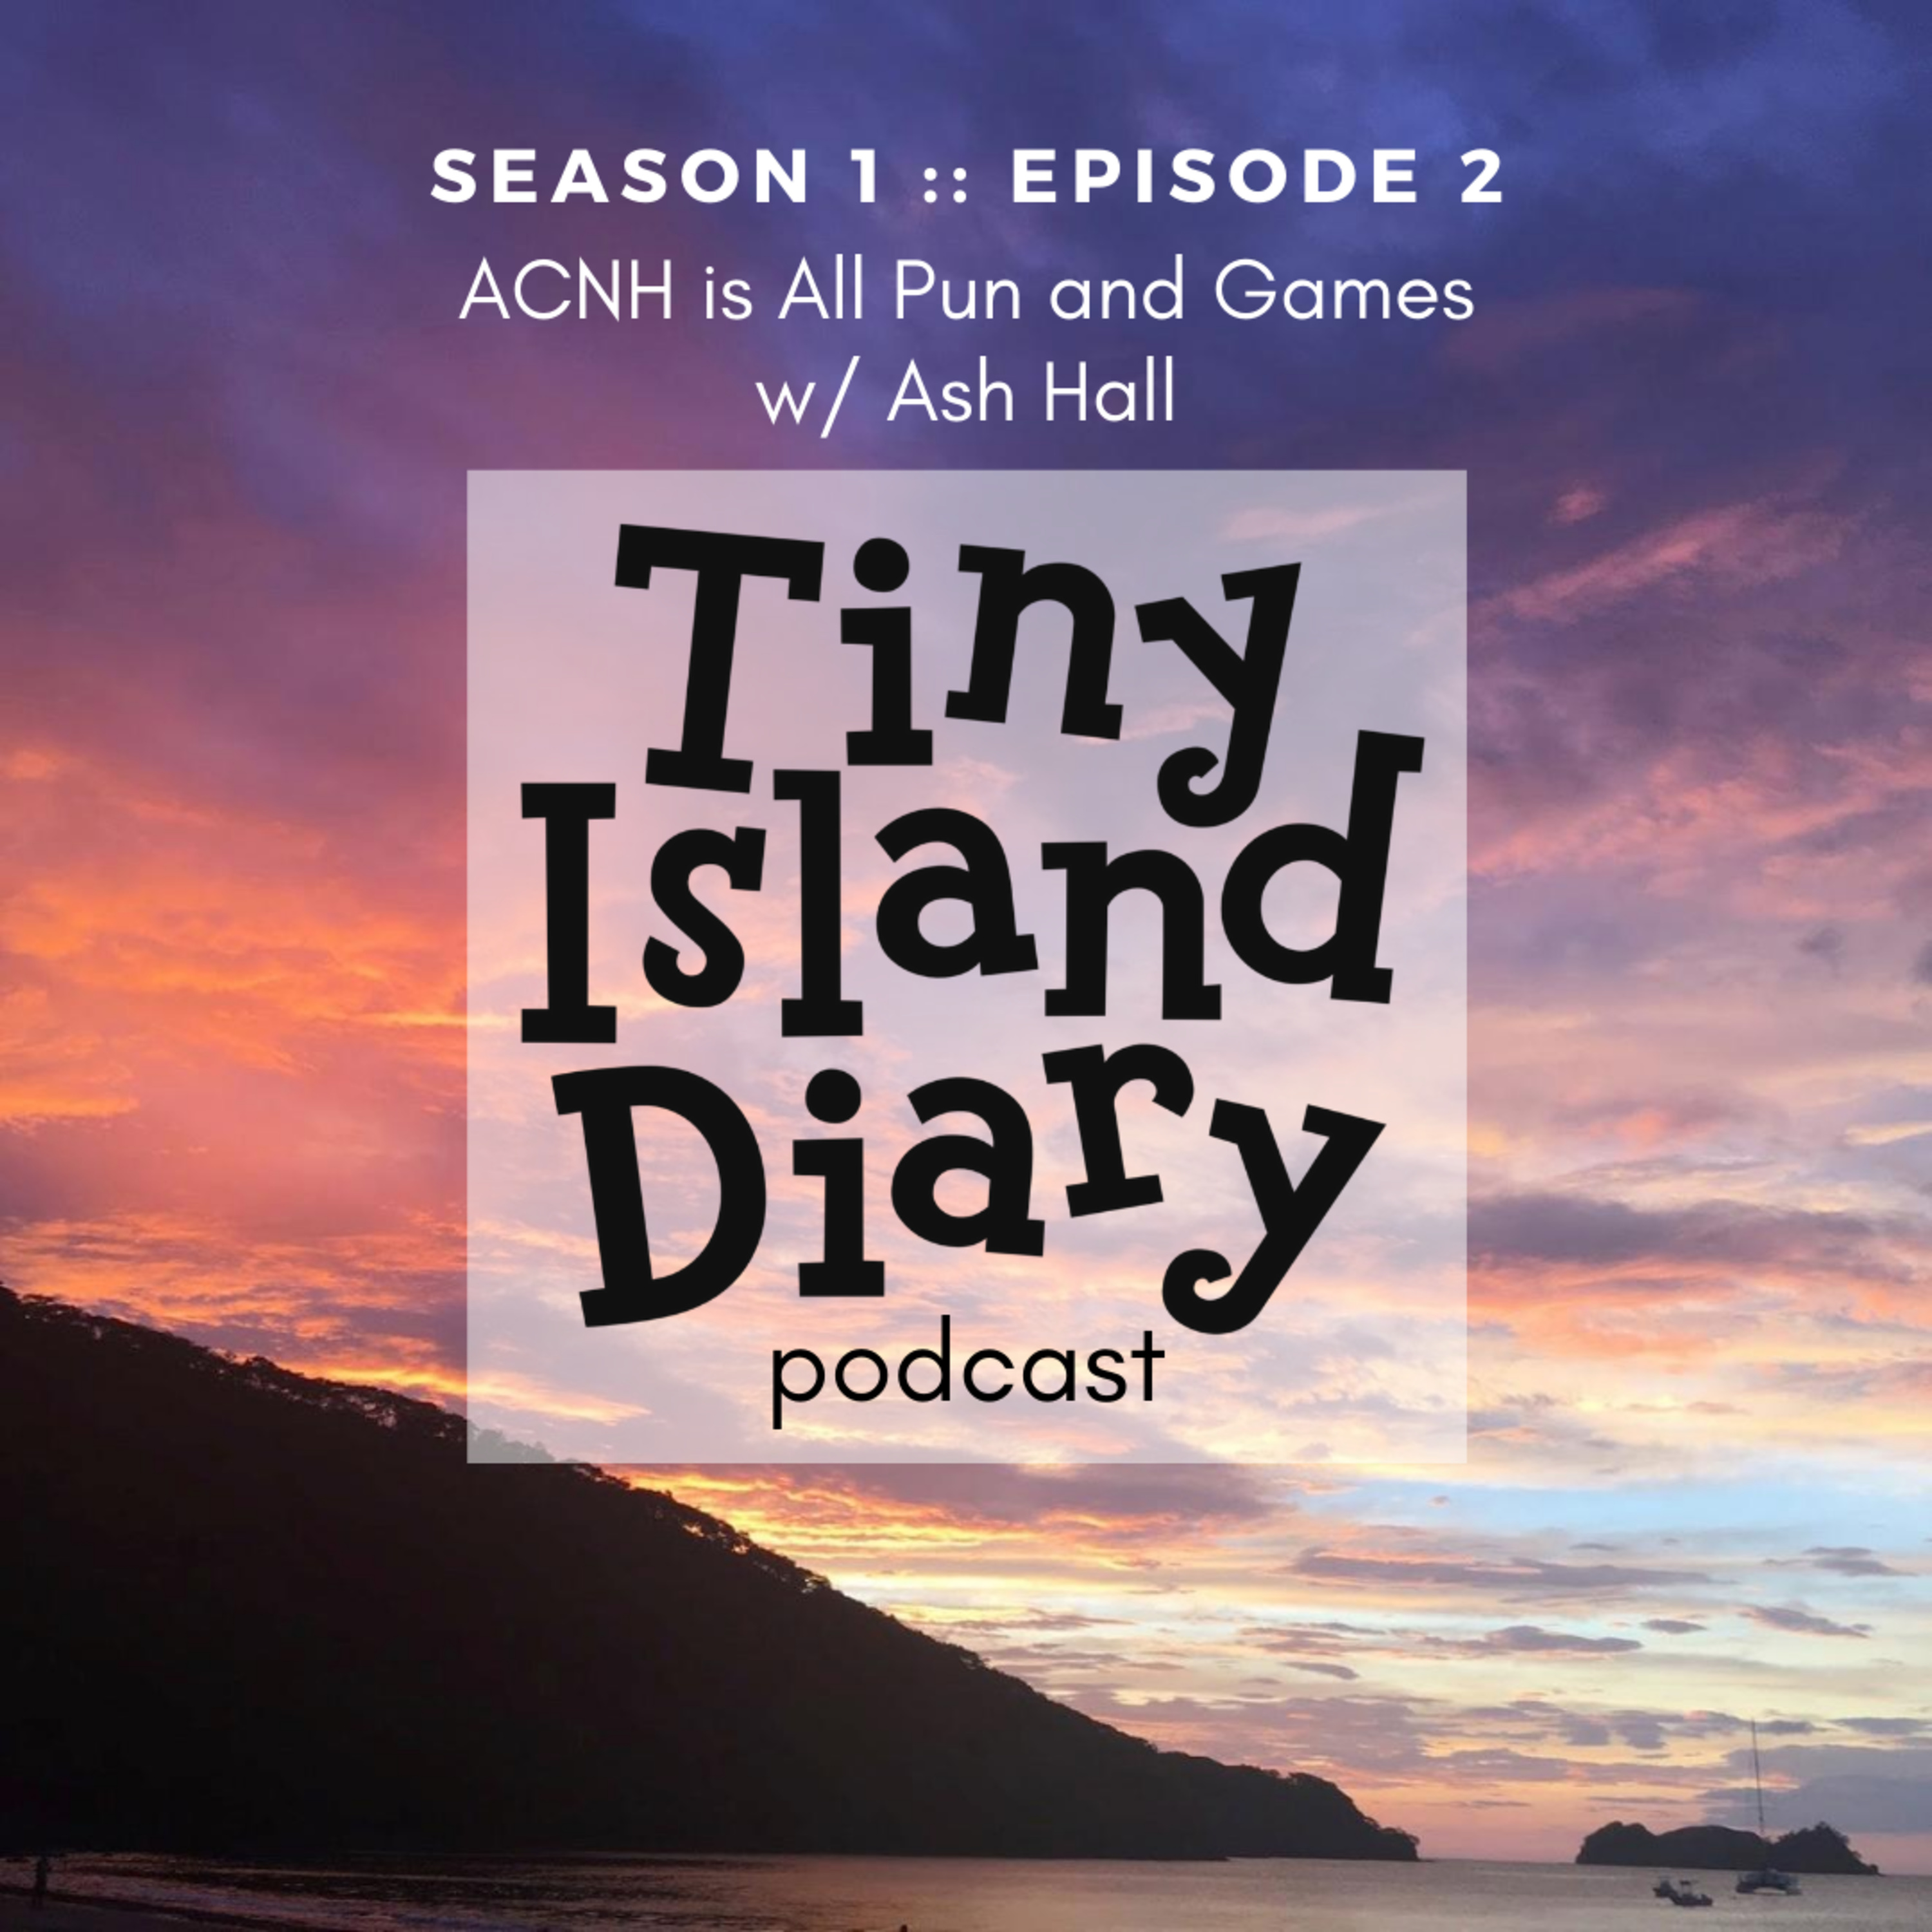 S1E2: #ACNH is All Pun and Games w/ Ash Hall